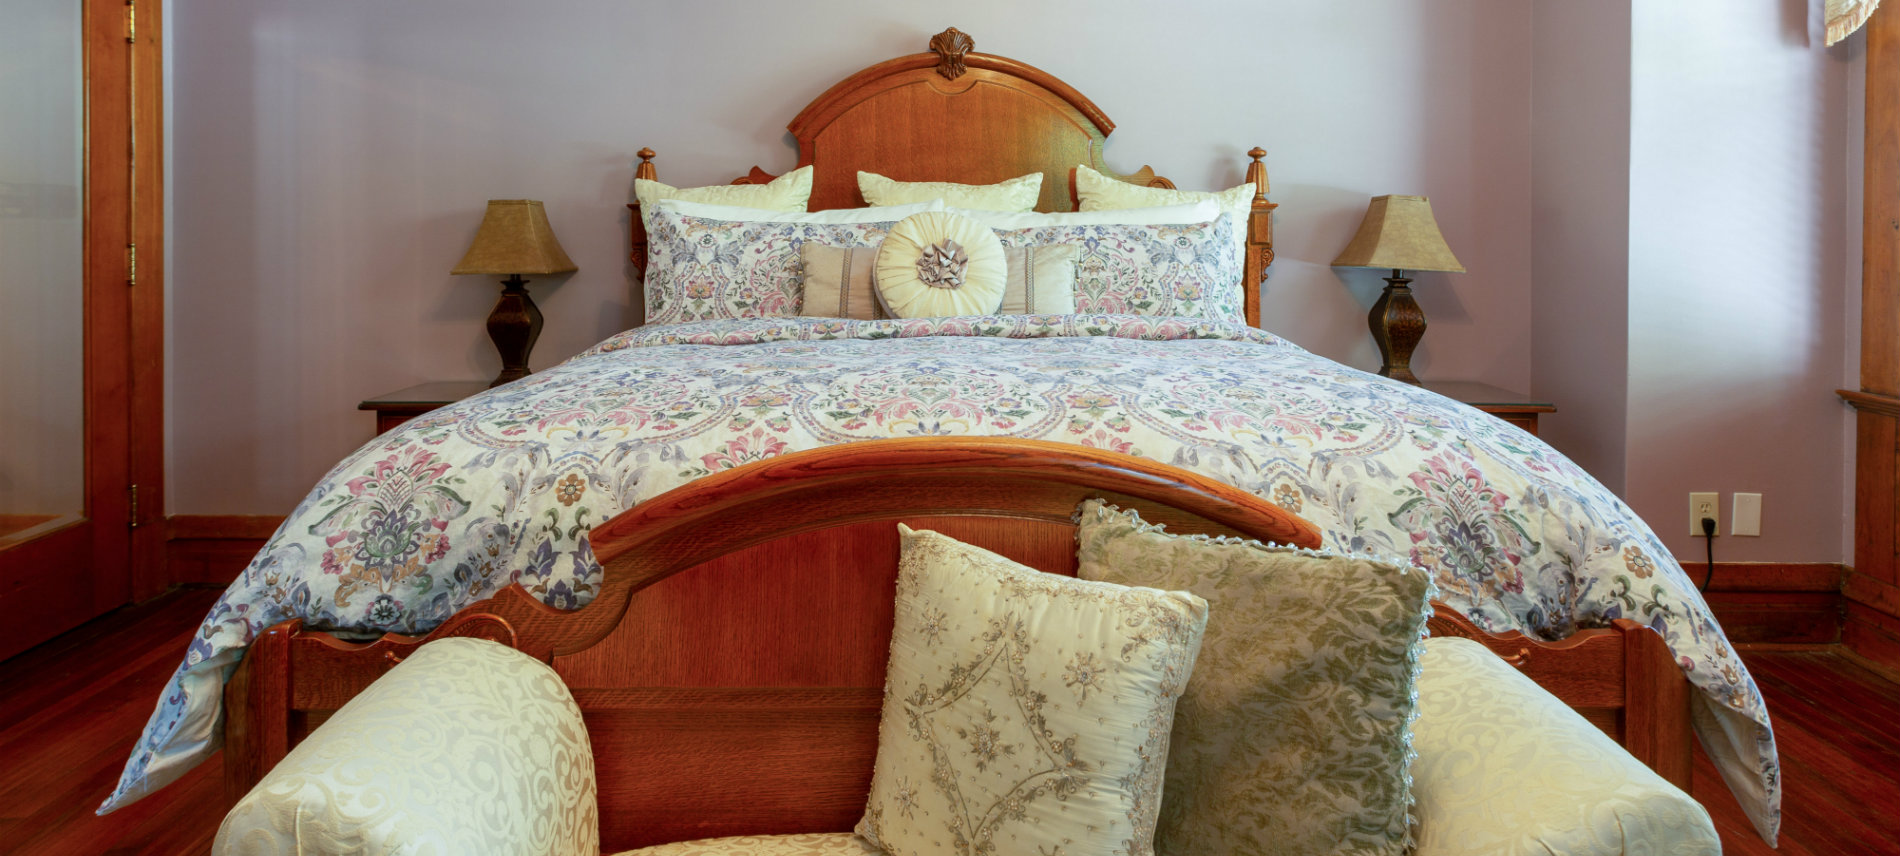 Large king bed with floral comforter, love seat and bedside table with lamp